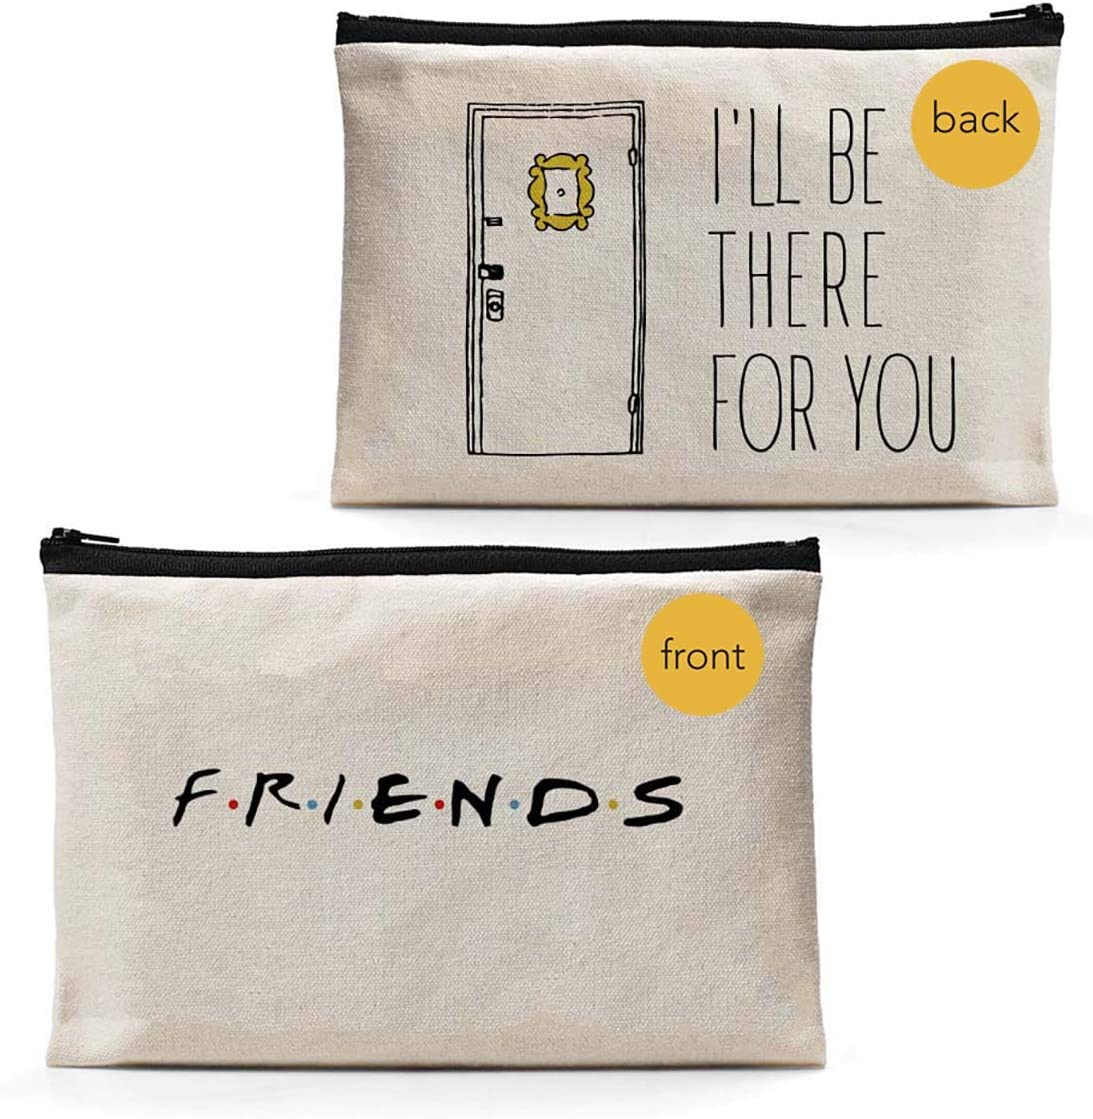 Zipper Bag Gifts Pencil Bag With Quote Canvas Pouch Travel Bag Funny Bag Bag With Funny Quote Dear Life Pouches With Funny Sayings